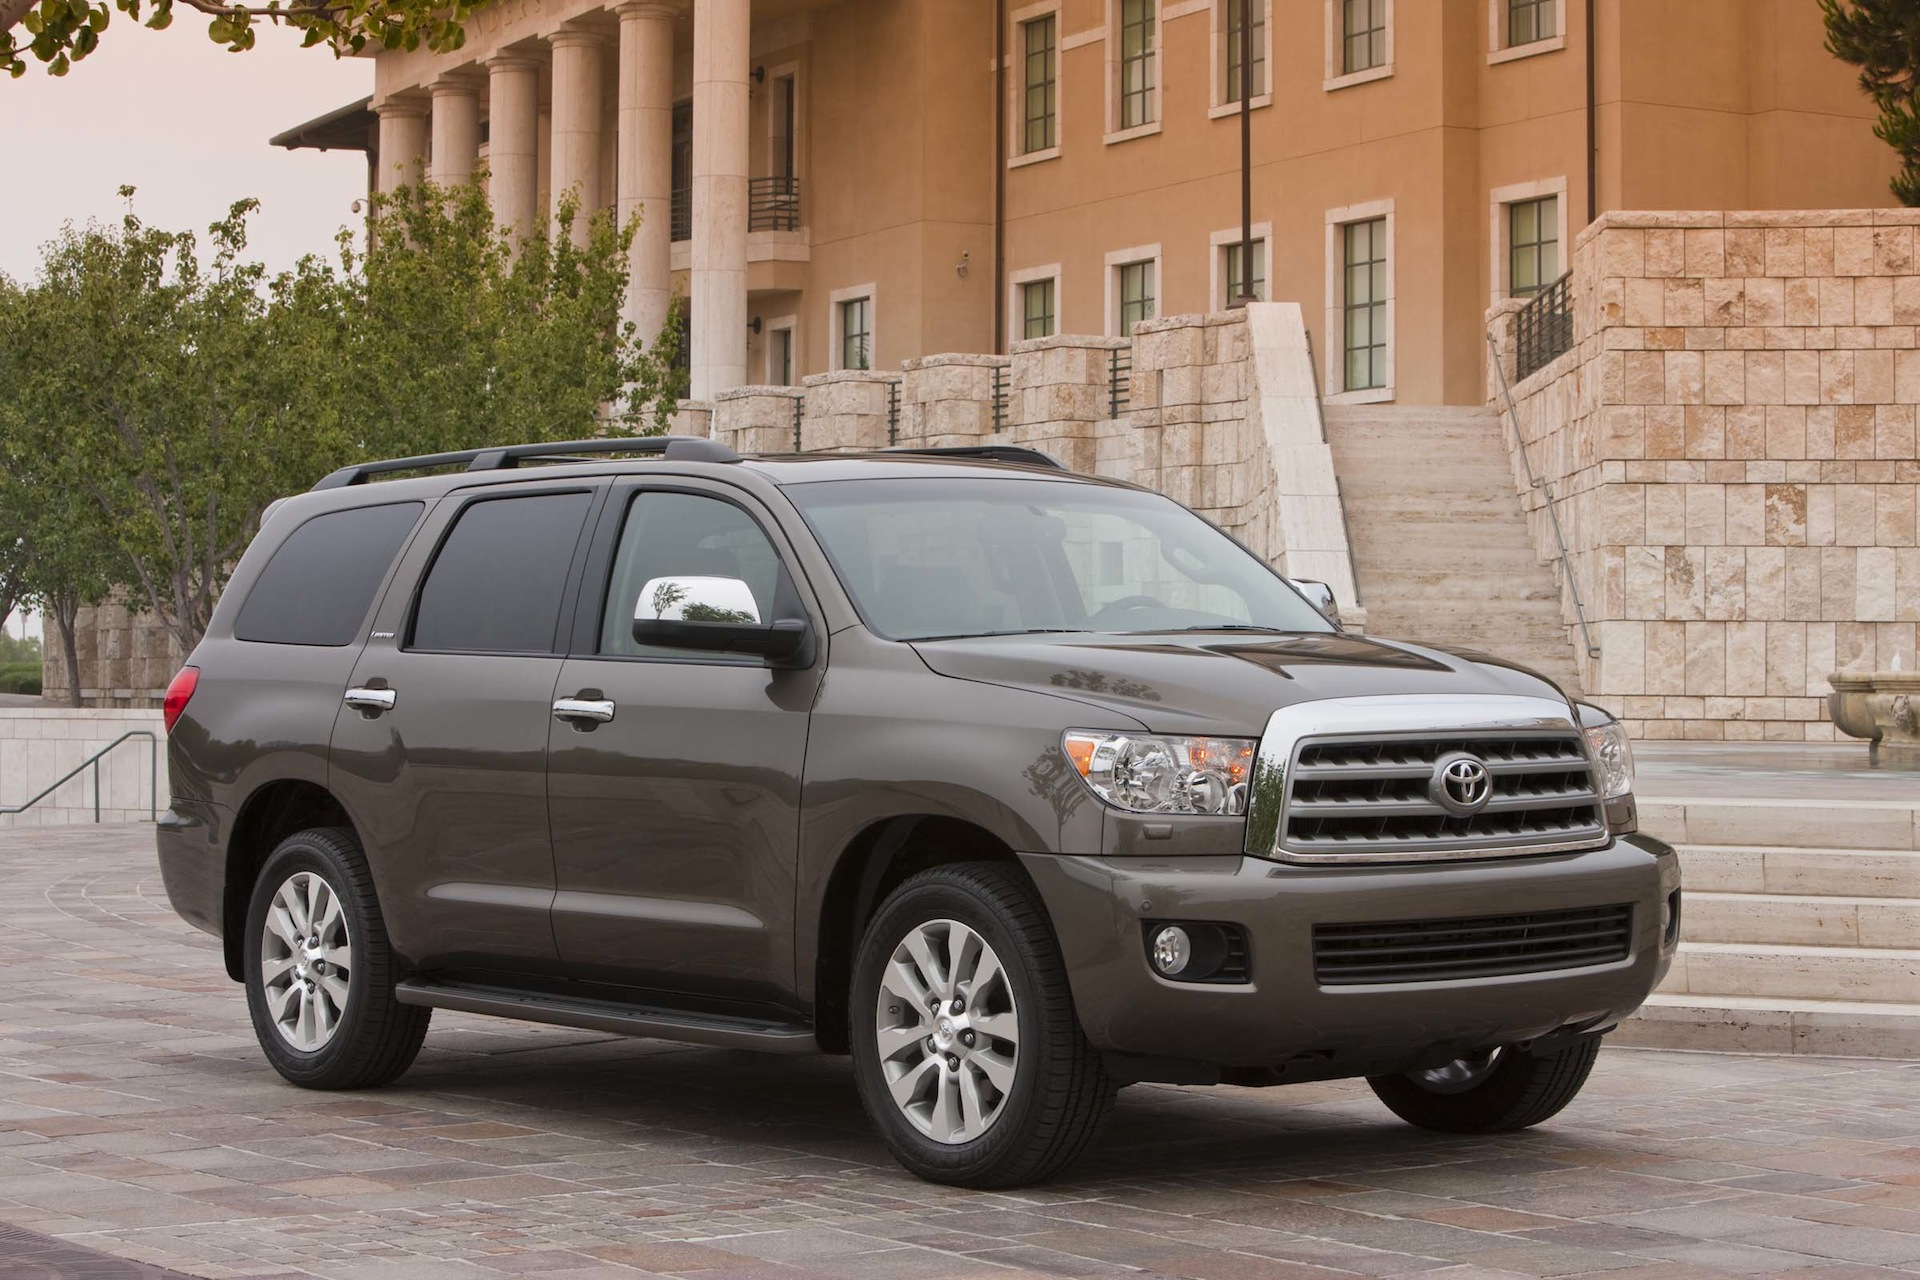 2014 Toyota Sequoia Performance Review - The Car Connection